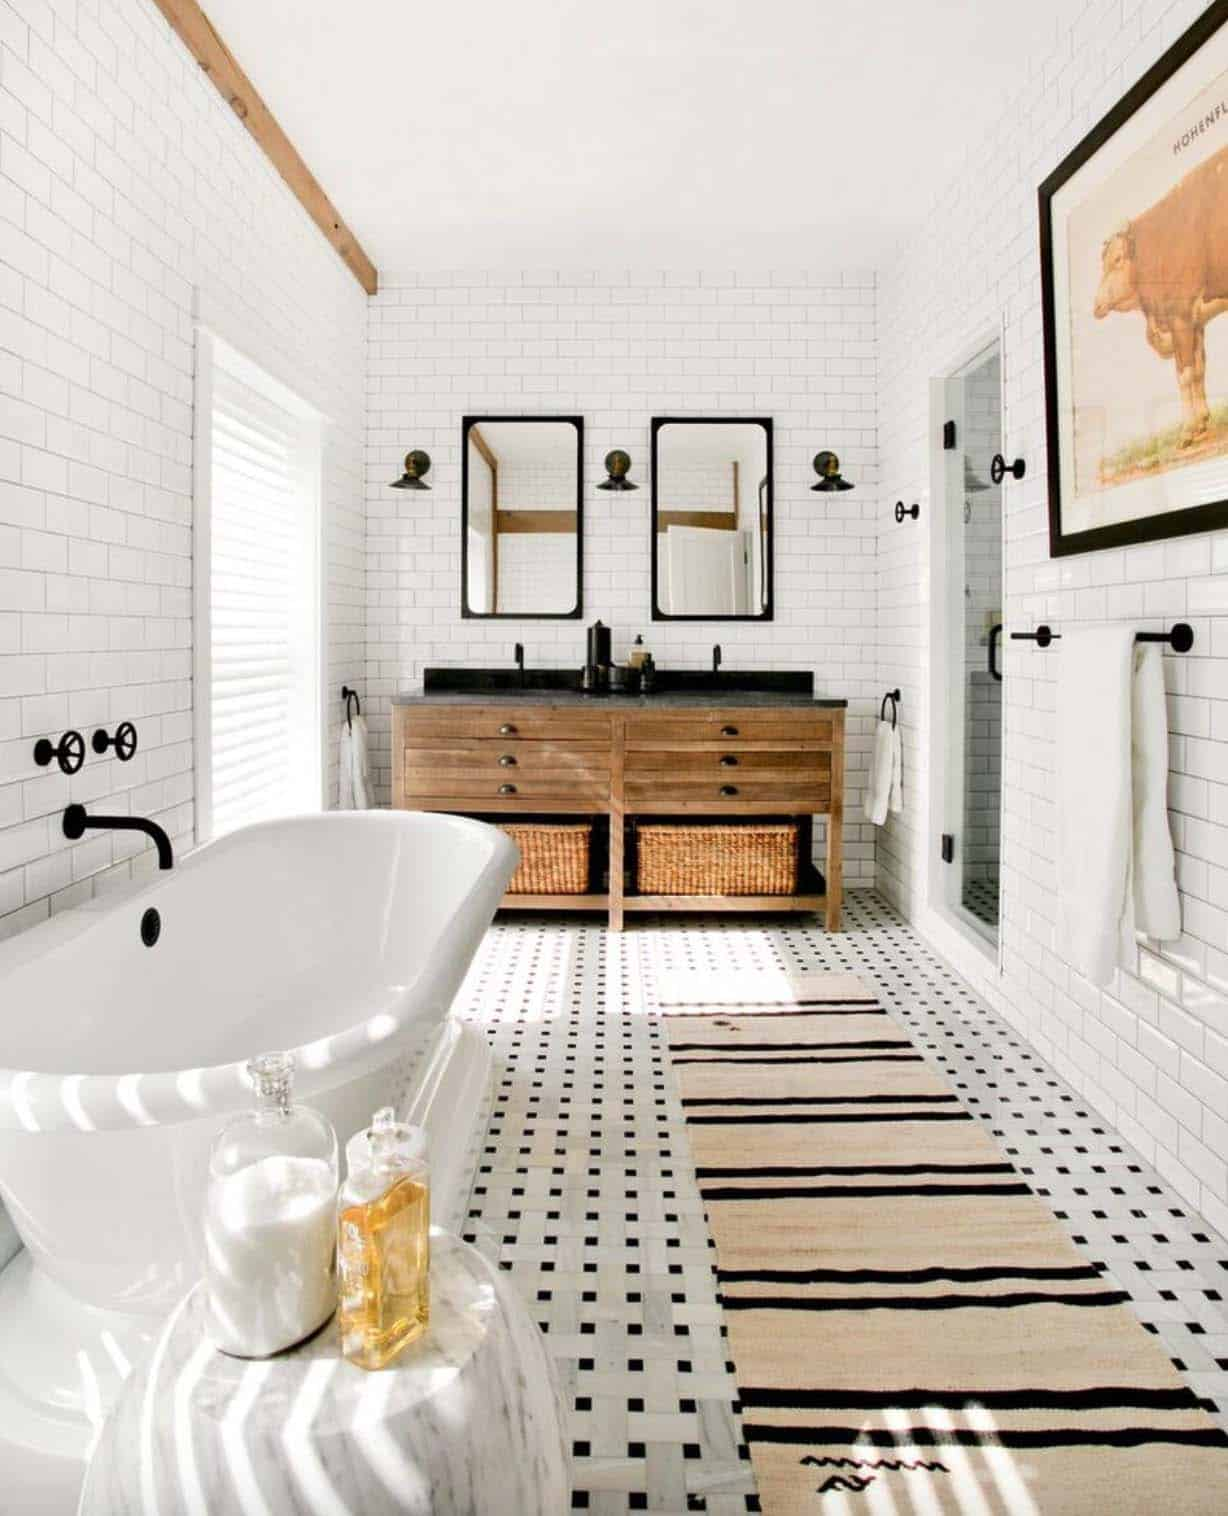 Modern Farmhouse Design-Timothy Godbold-23-1 Kindesign